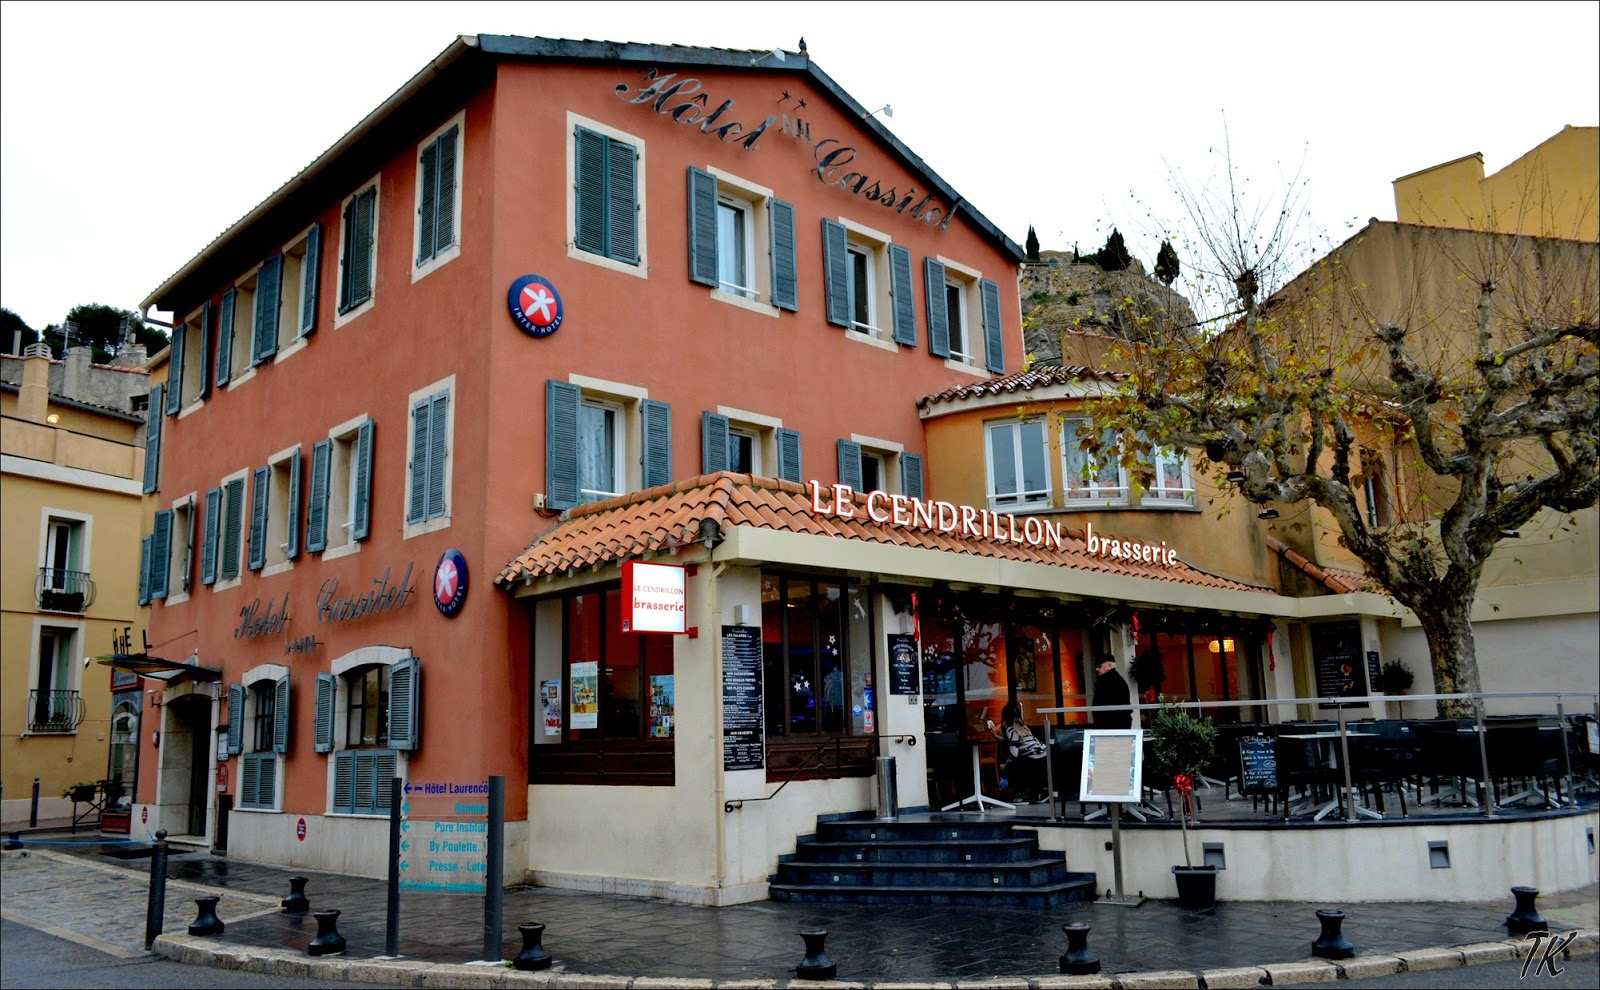 Tiof nouveaux carnets one day in cassis france for Cassis france hotels